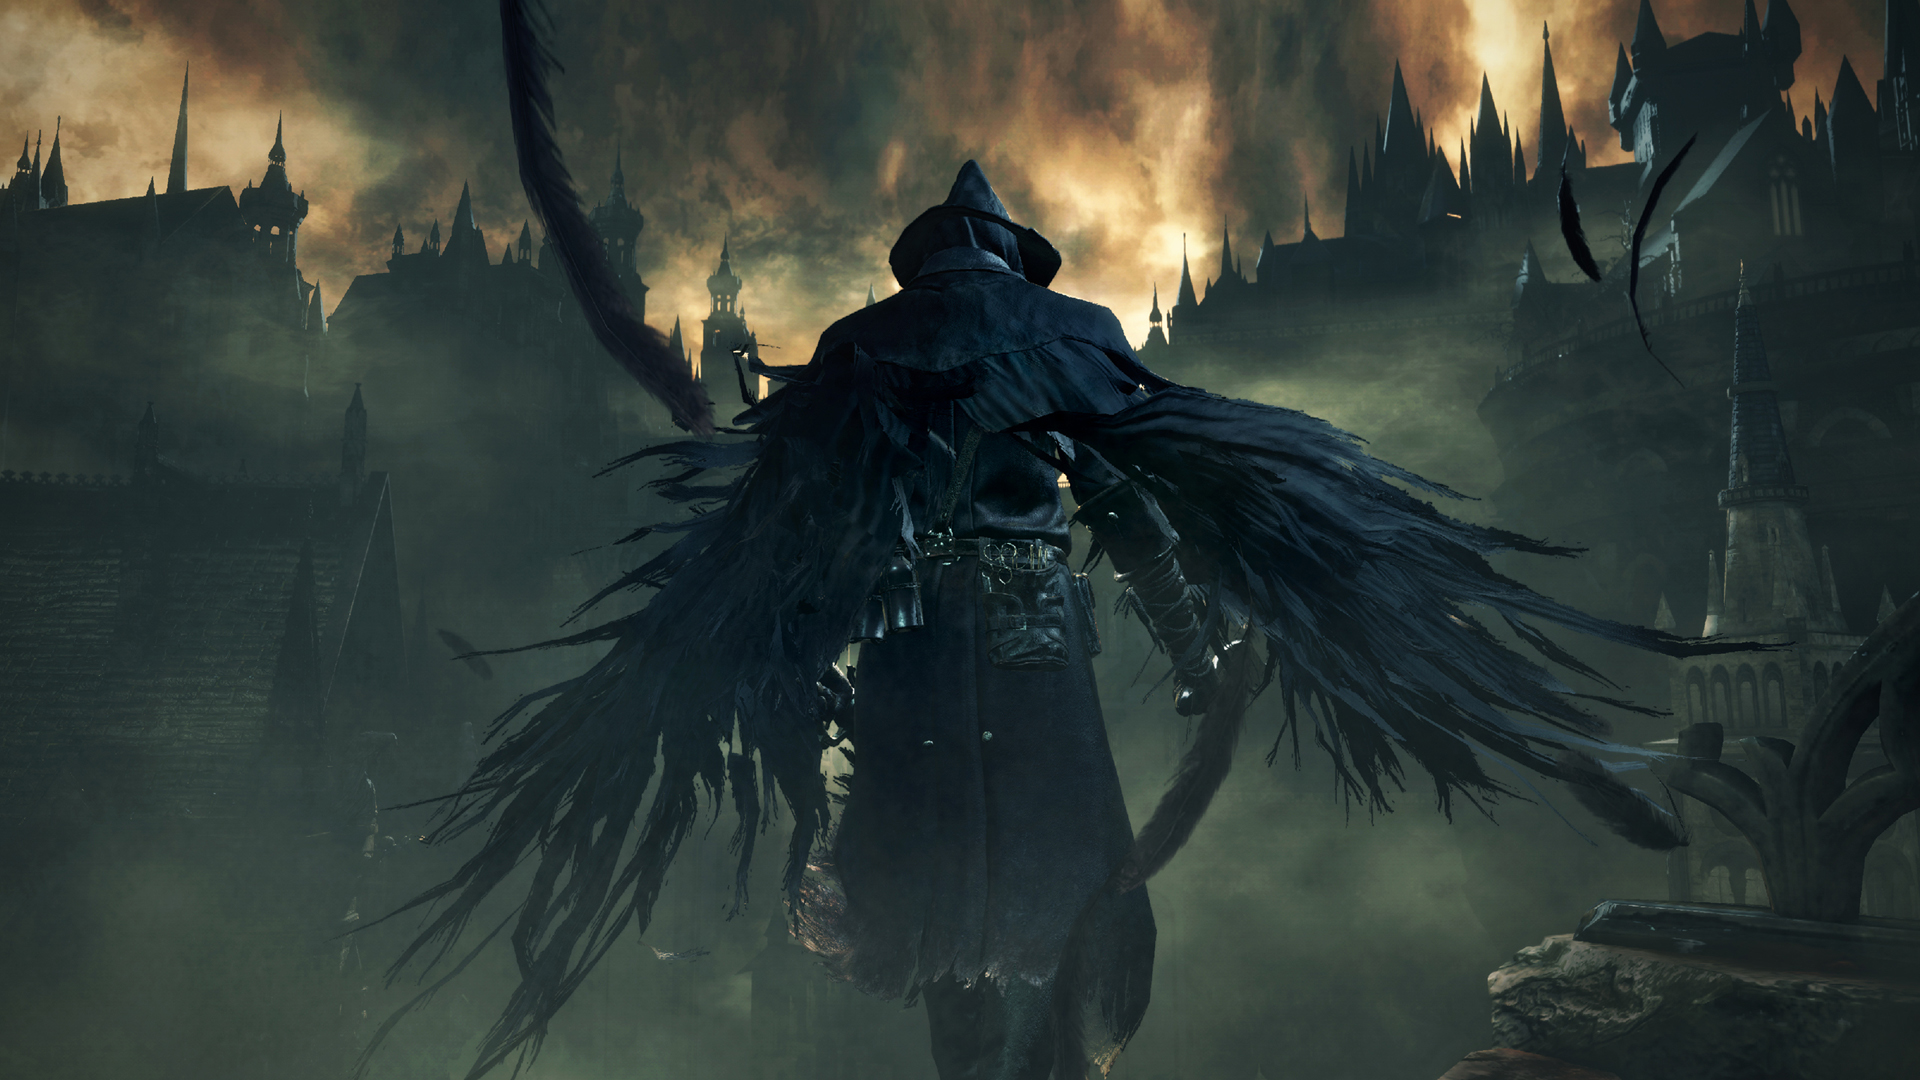 10+ Bloodborne Game High Quality Wallpapers